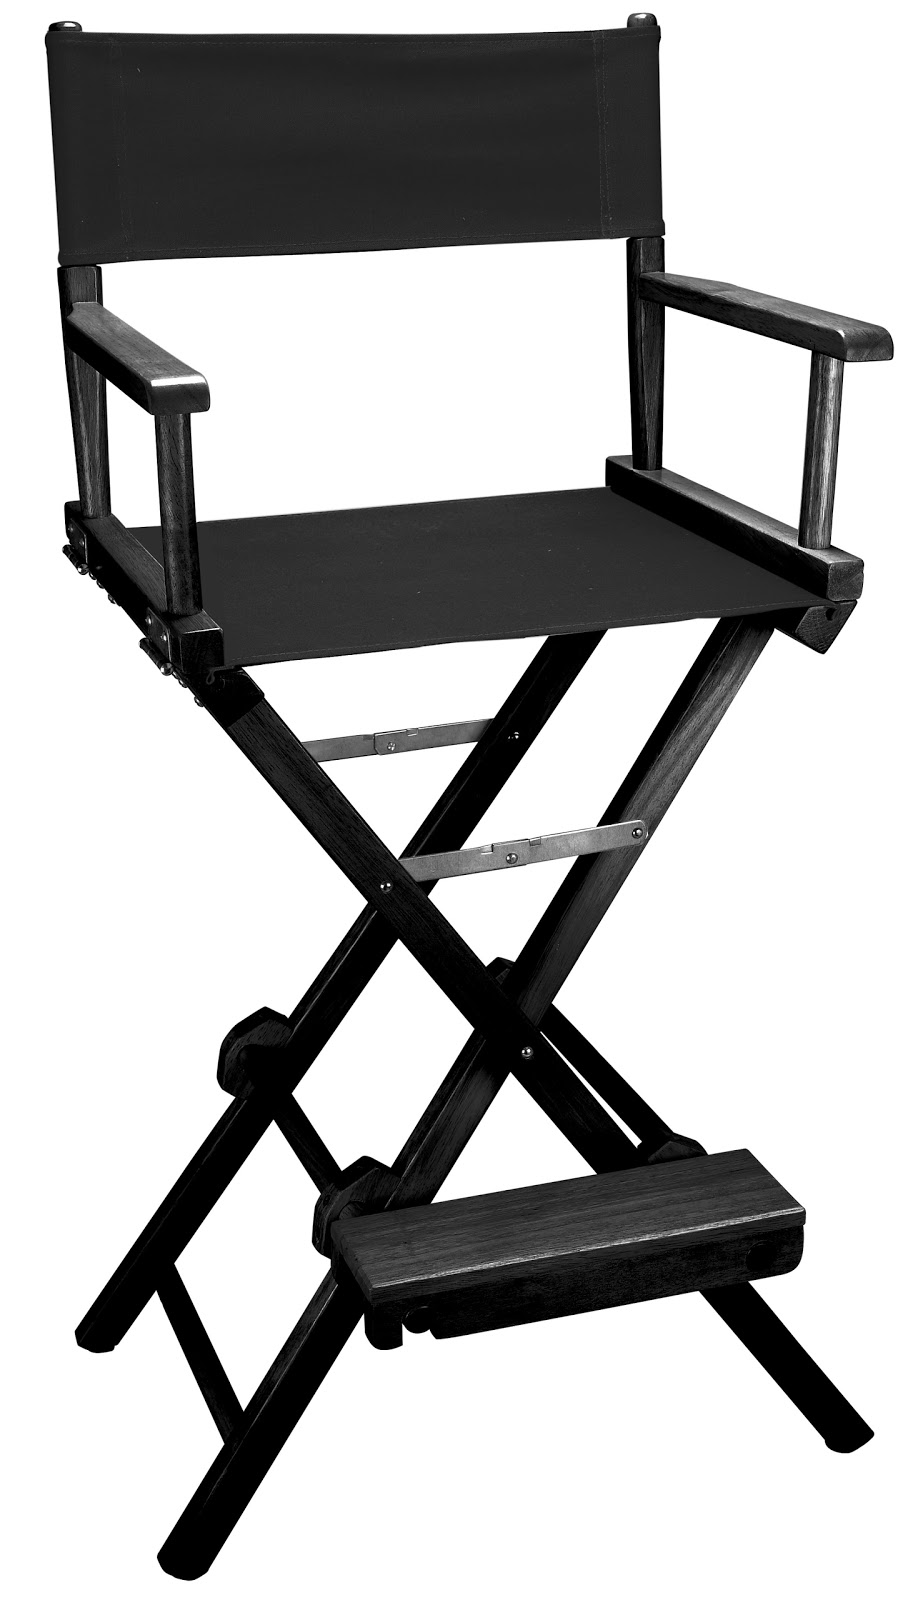 Black Directors Chair Furniture Hire Furniture Rental New Tall Directors Chairs For Hire